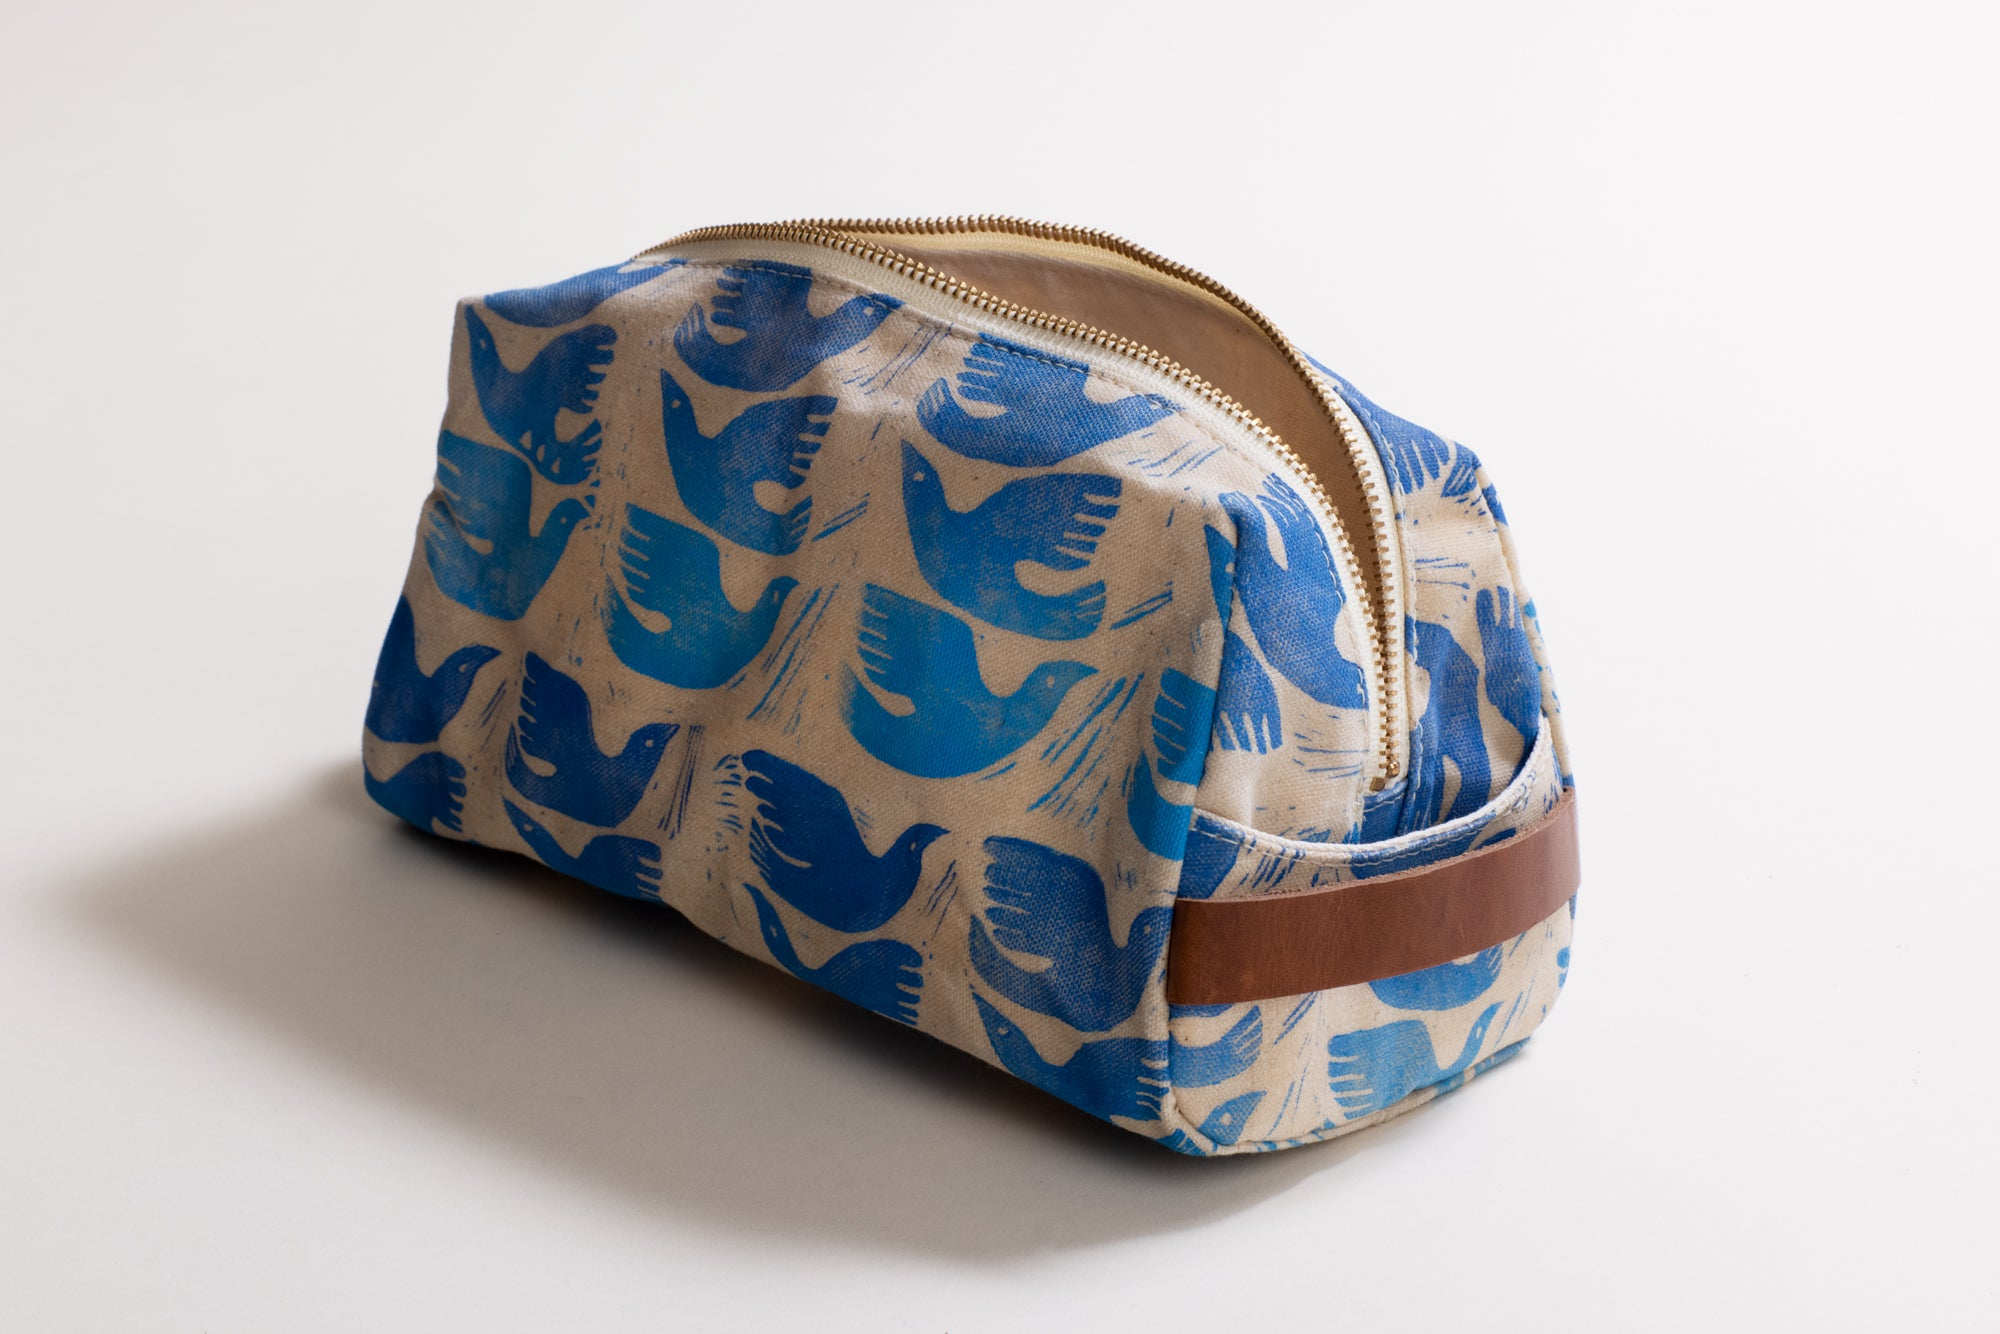 The Dopp Kit Love Birds in Ombre